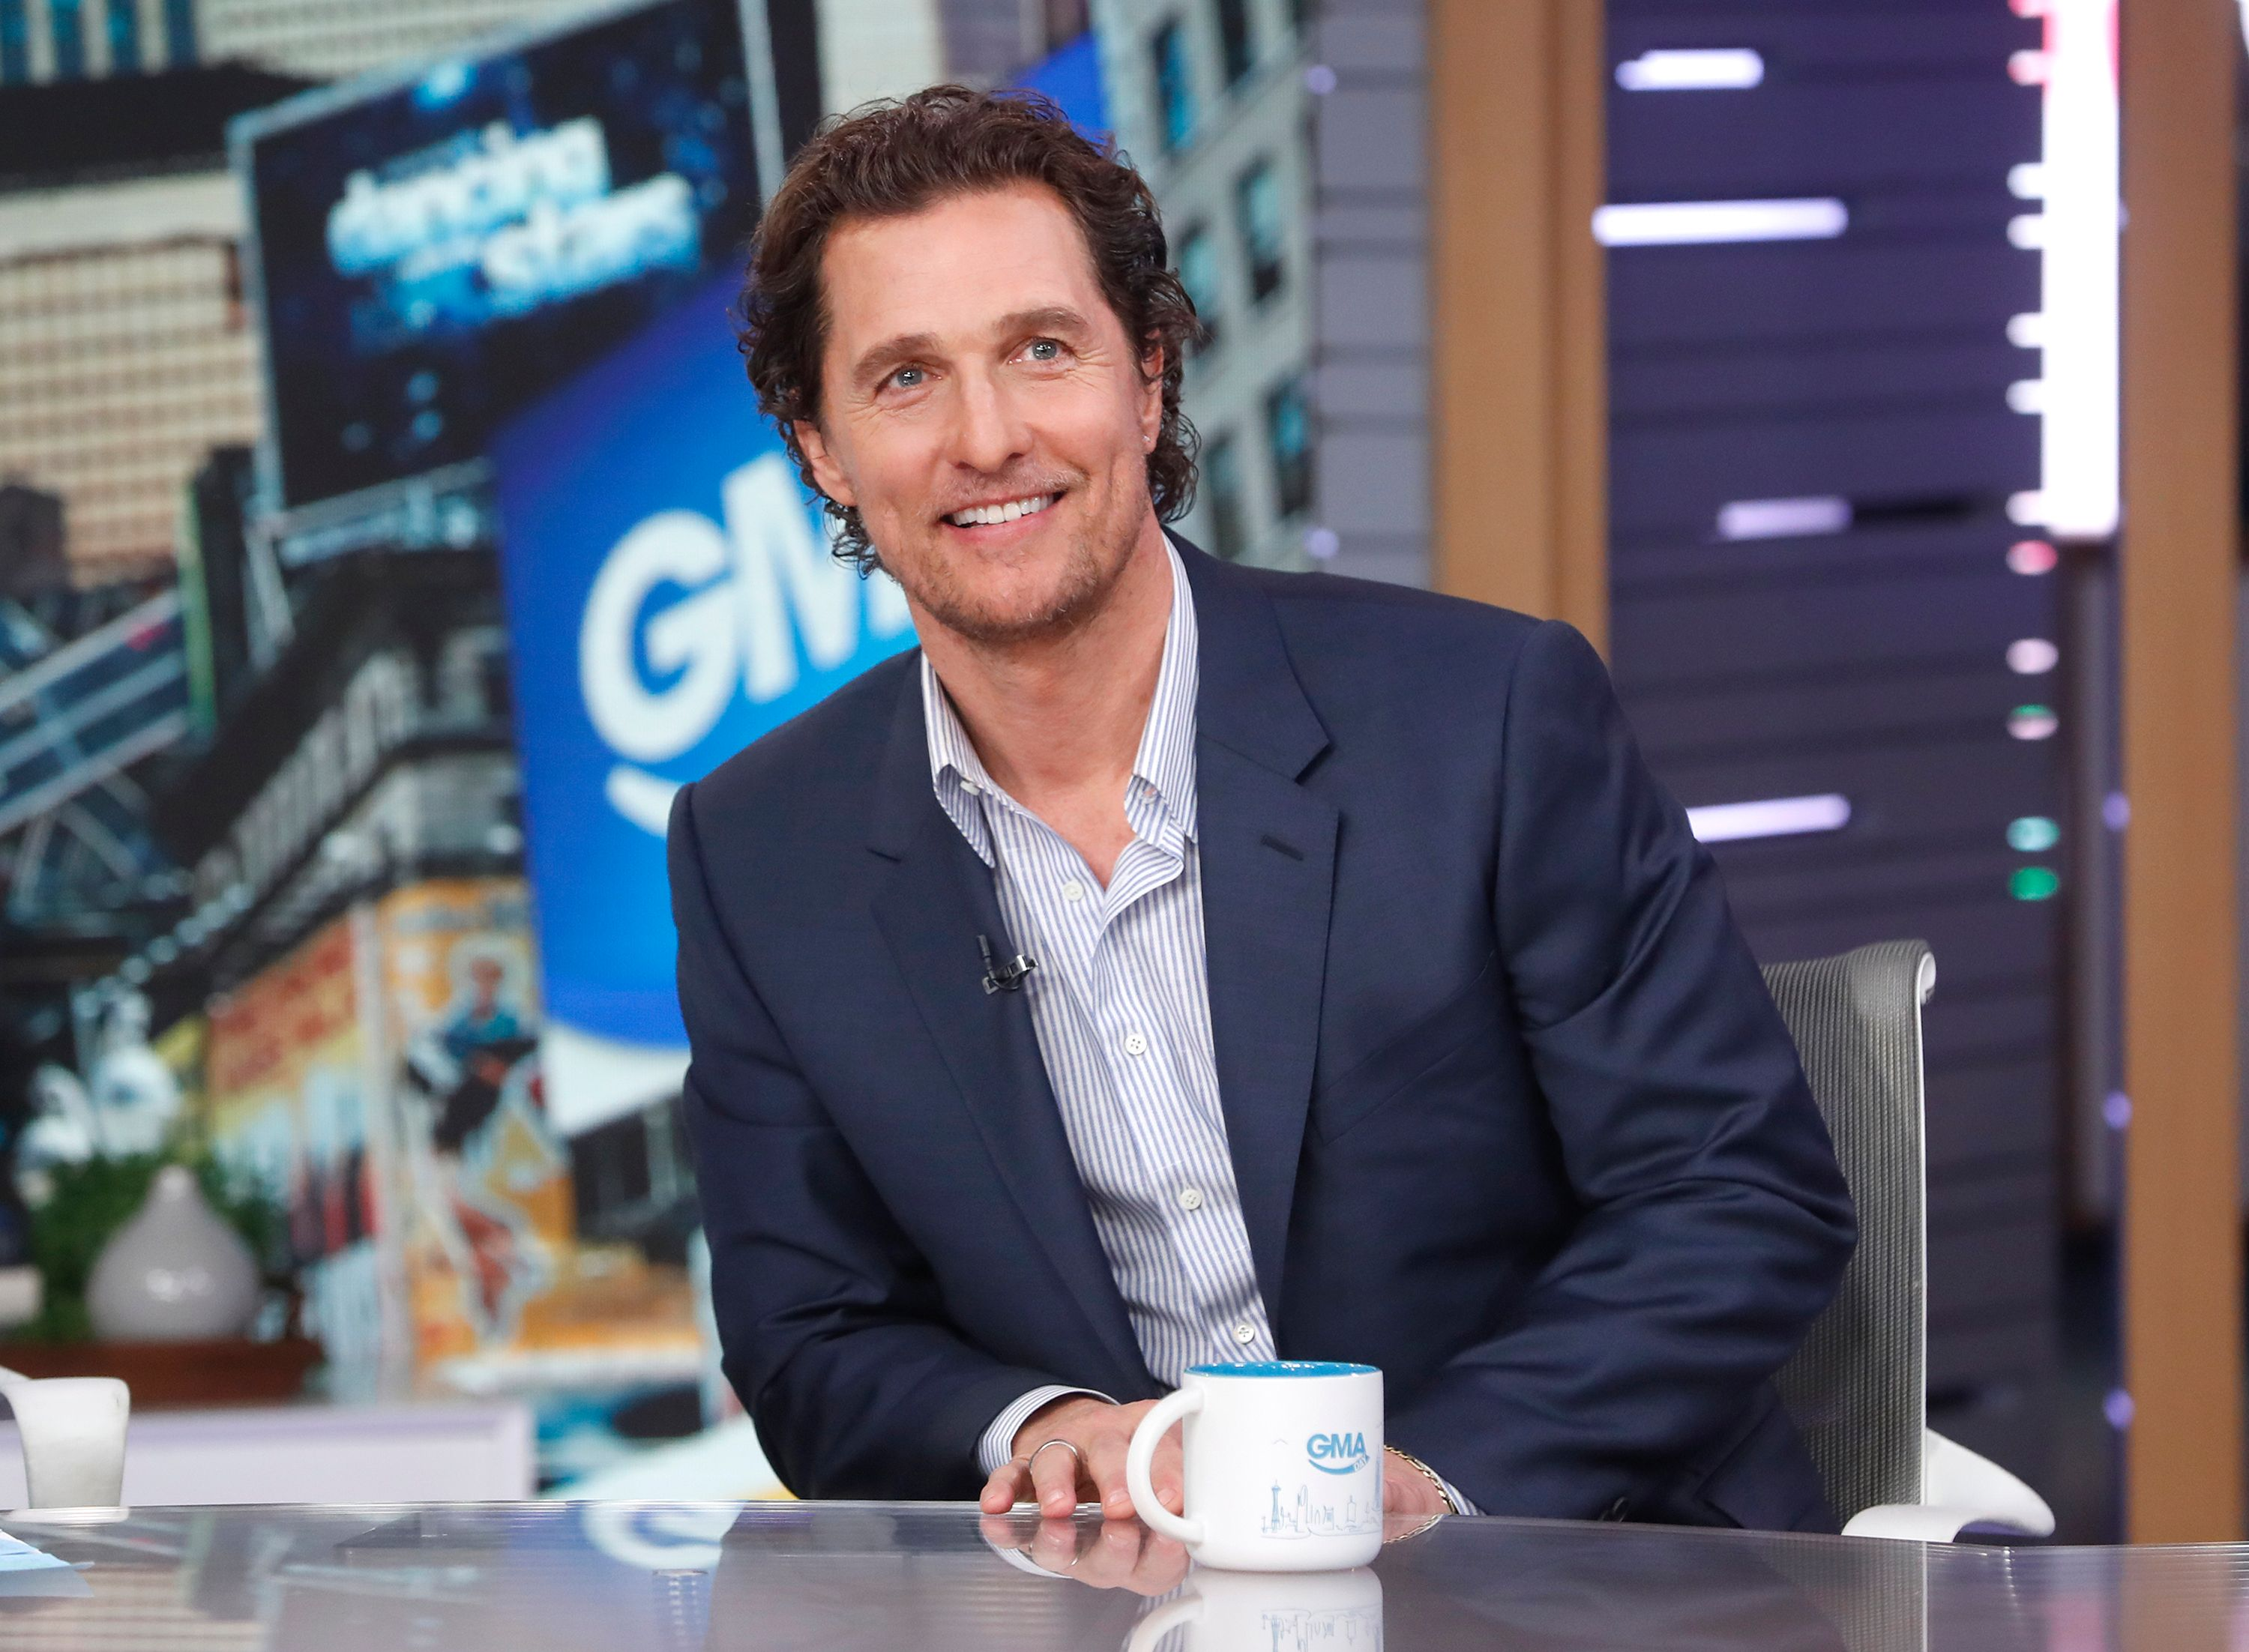 """Matthew McConaughey was a guest on """"GMA DAY,"""" on Thursday January 24, 2019   Photo: Getty Images"""